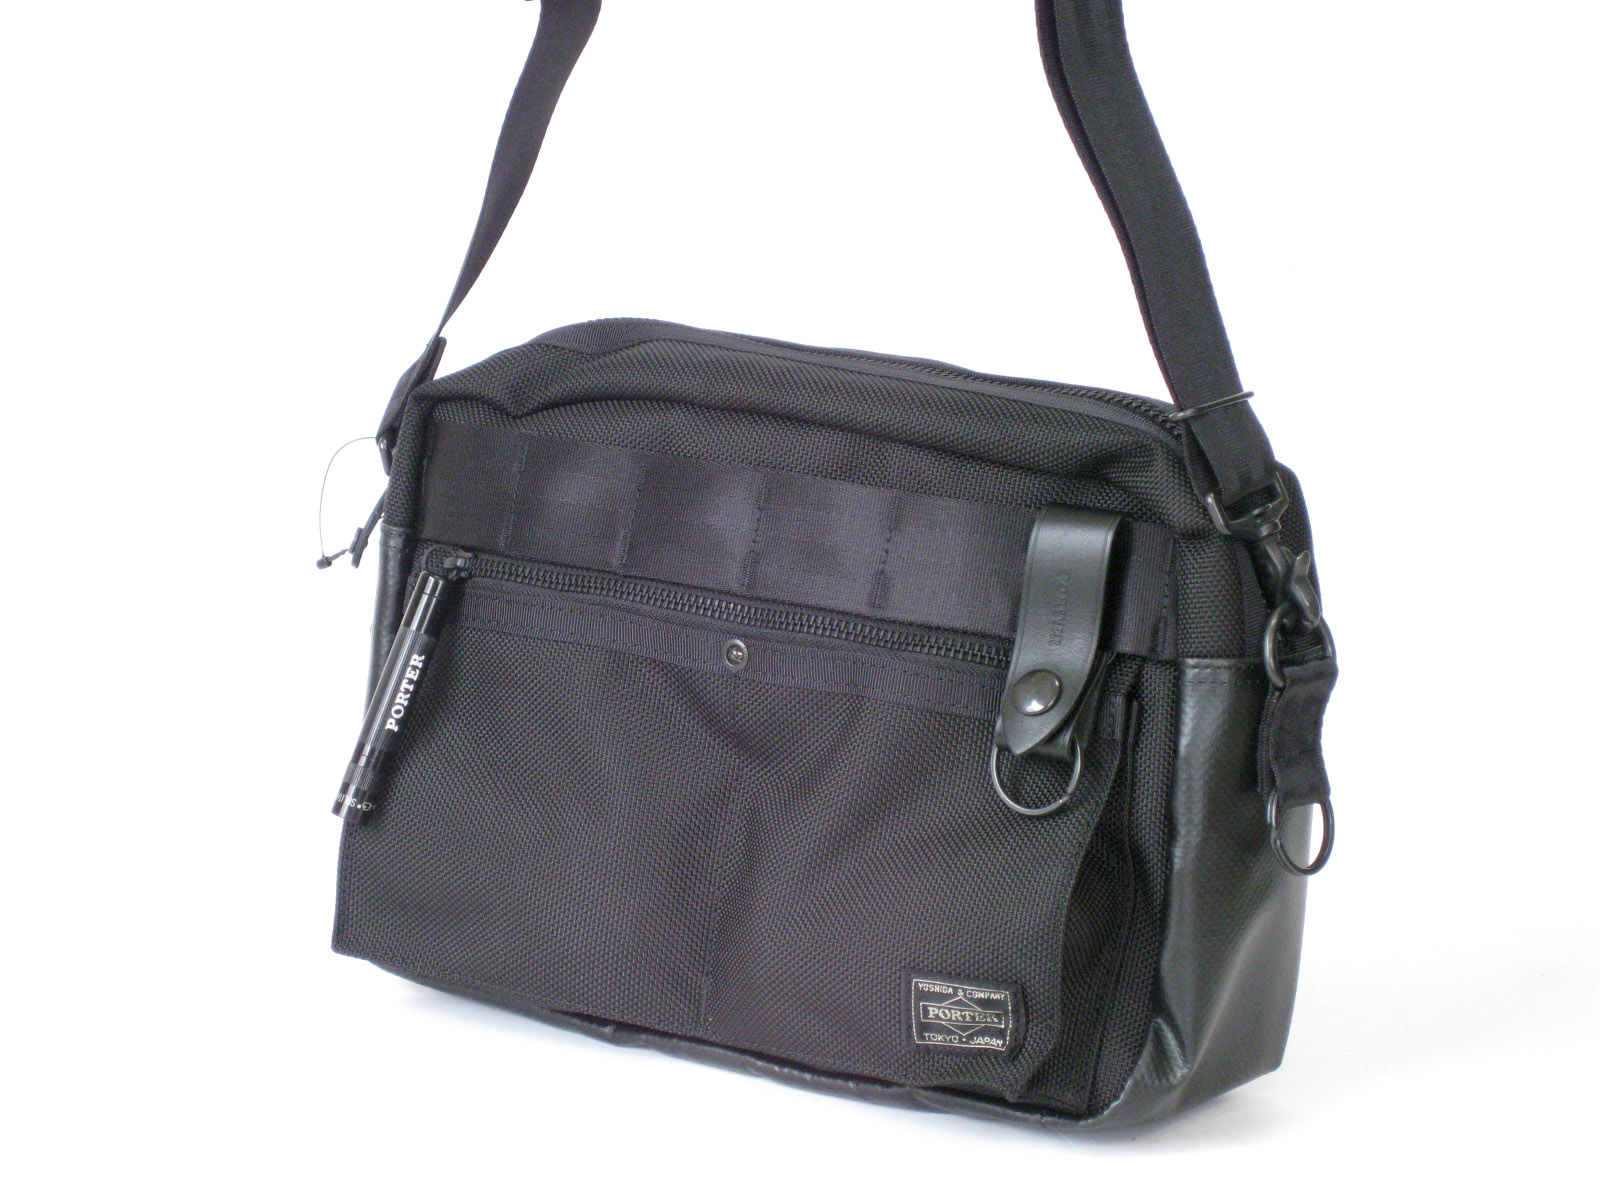 (Only in JAPAN.) 吉田カバン PORTER ポーター ヒート ショルダーバッグ 703-07970 (This product is not for overseas customer.)